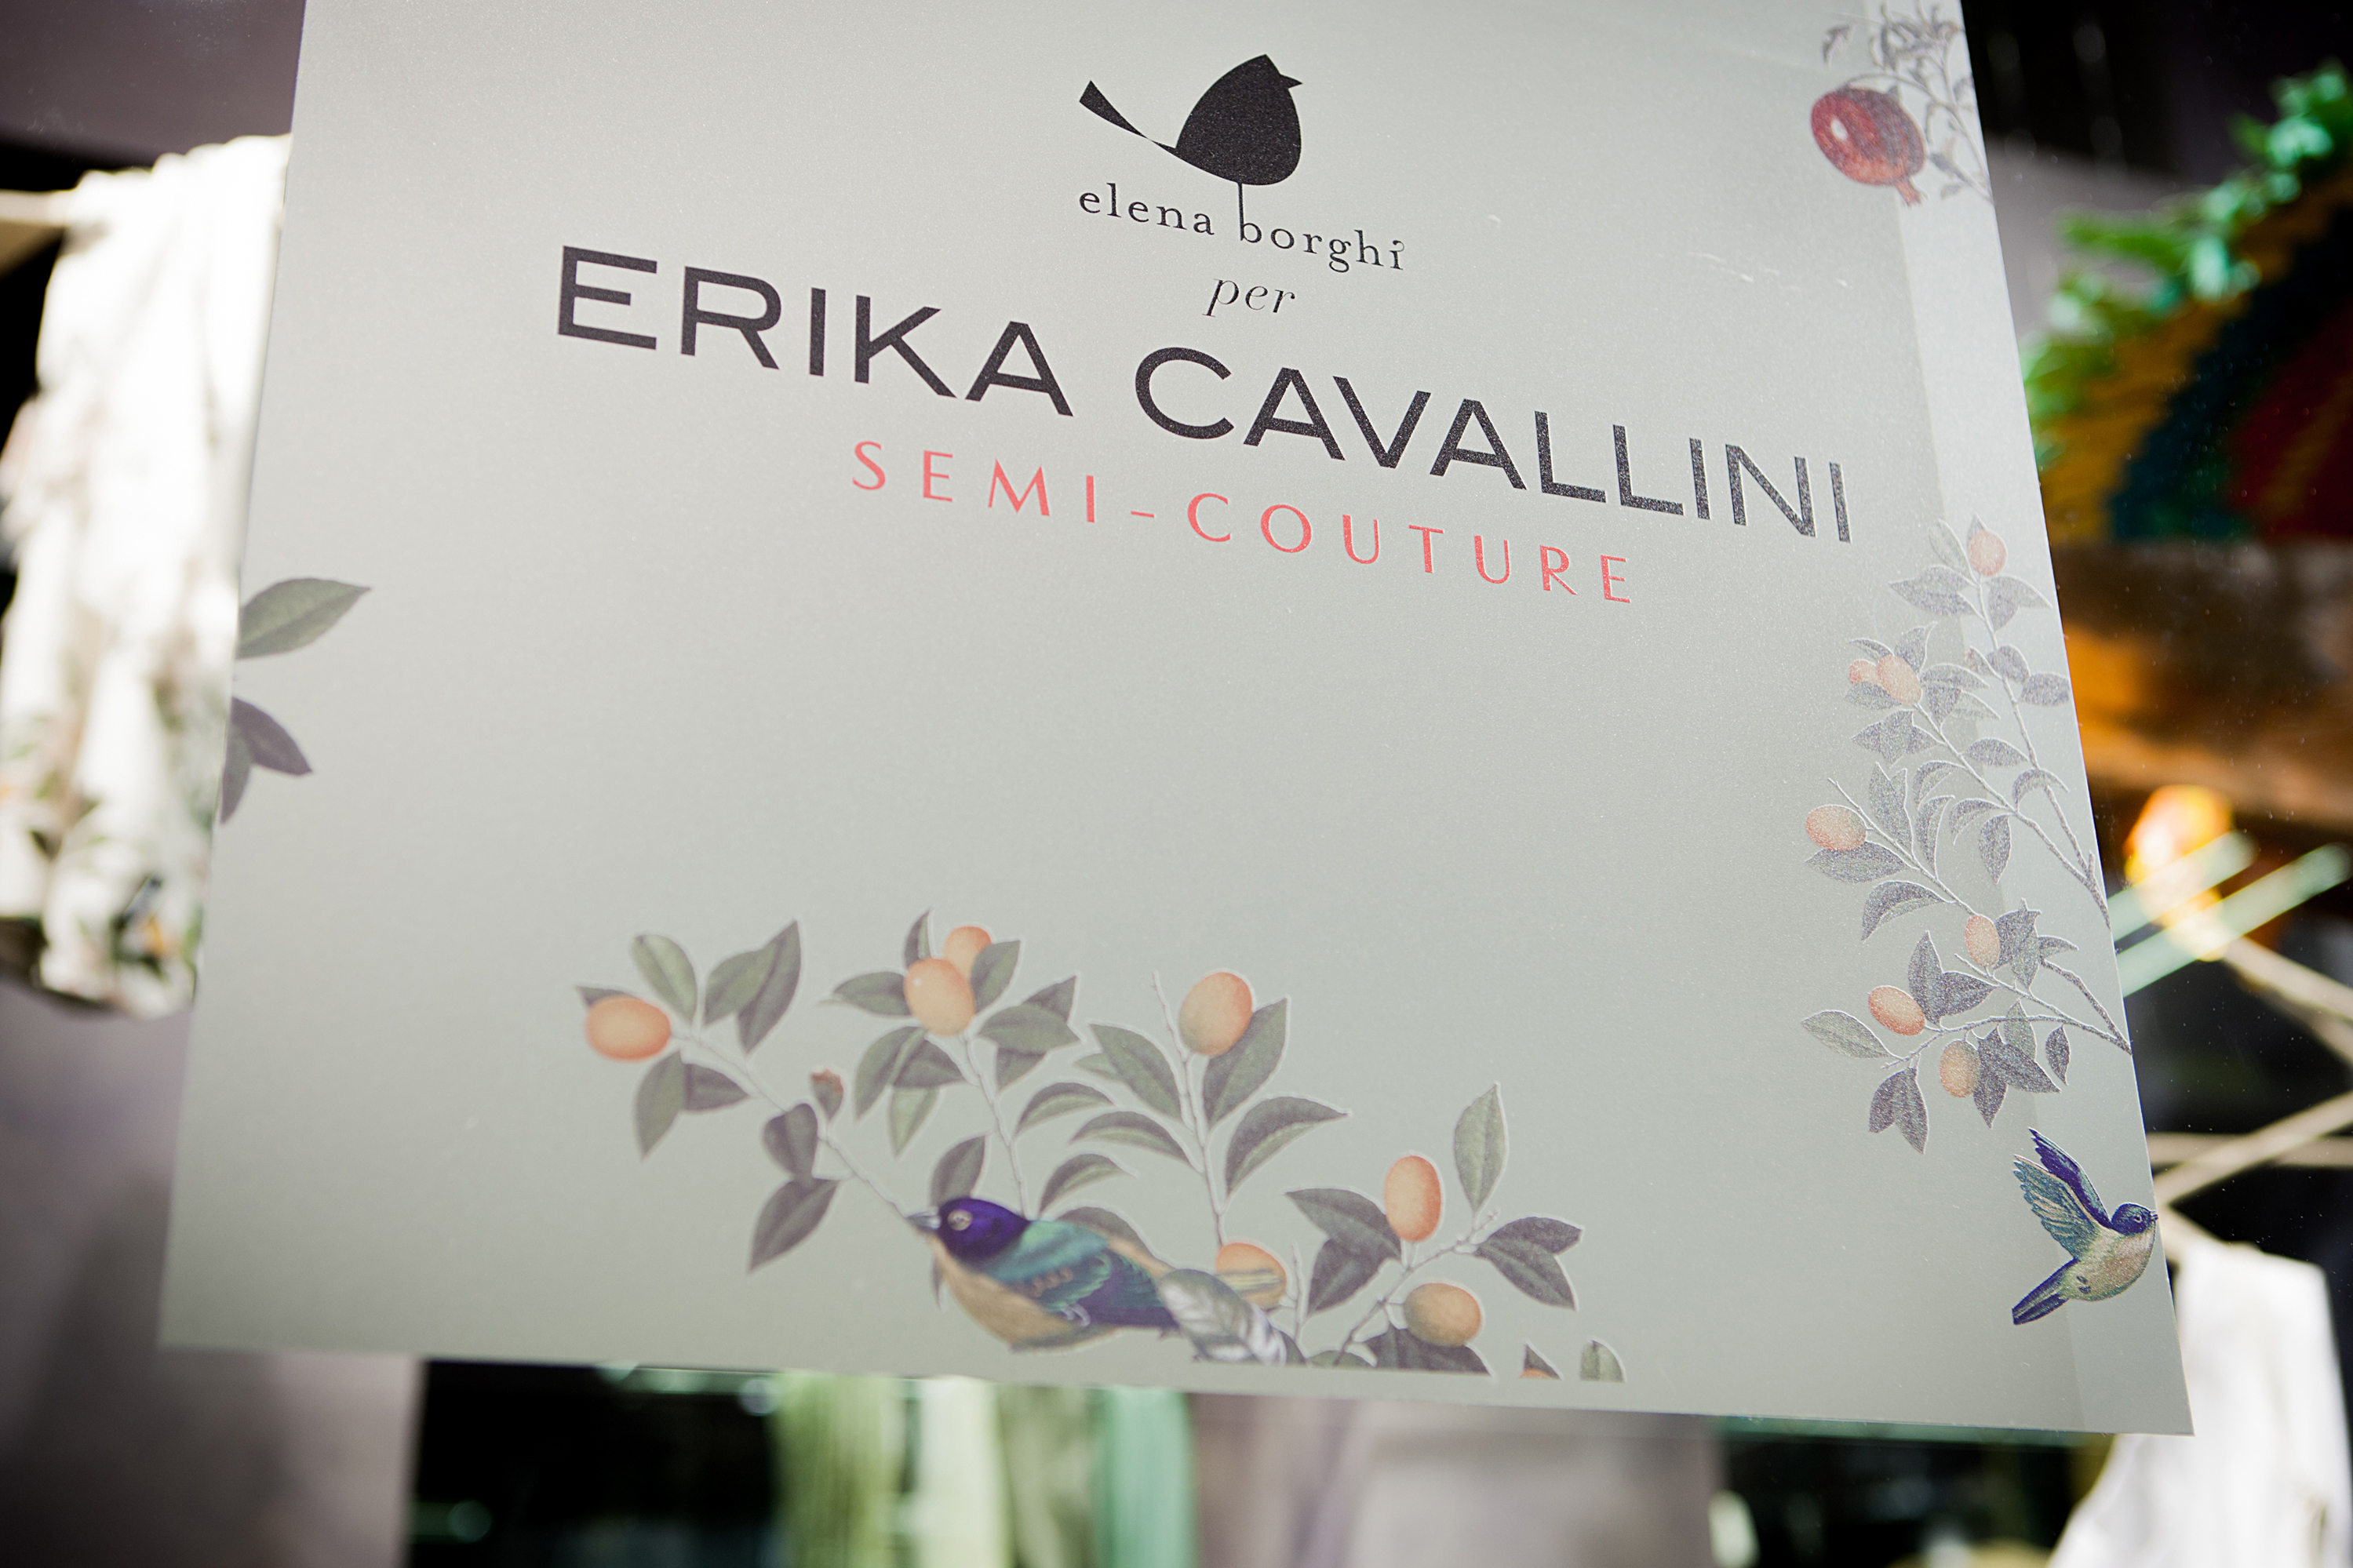 elena-borghi-for-erika-cavallini-semicouture